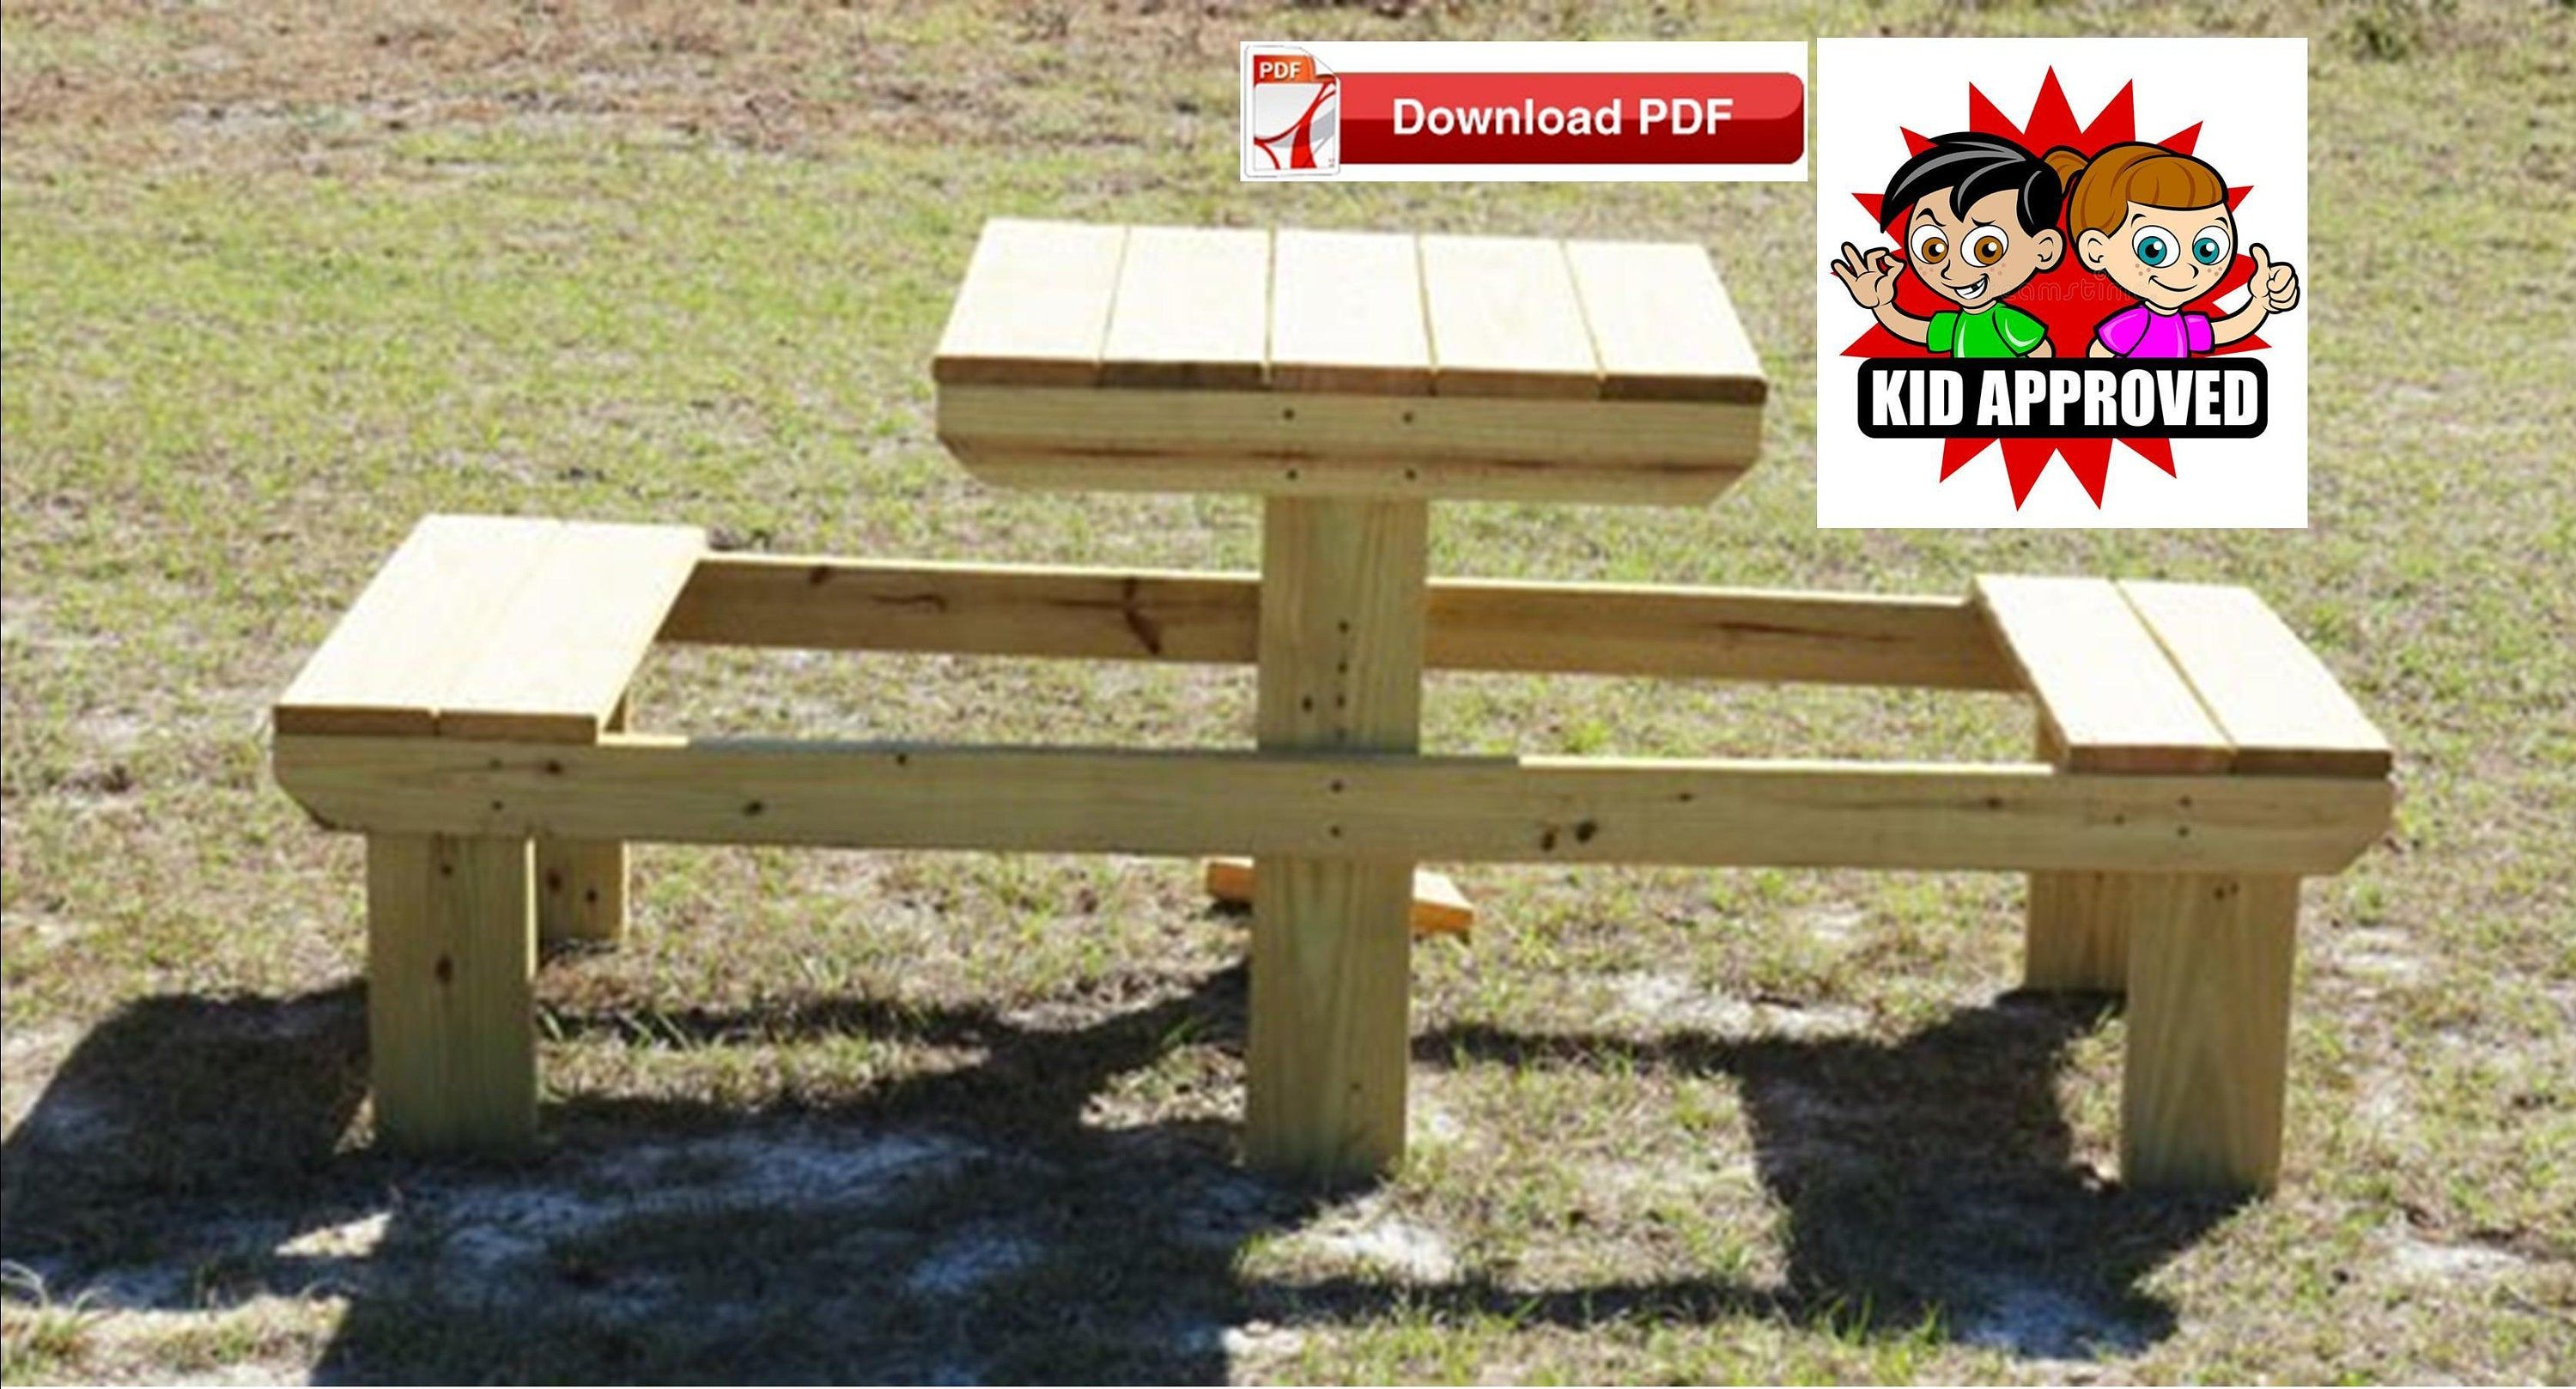 Picnic Table Plan Kids Picnic Table Plan Mini Picnic Table Etsy Picnic Table Plans Kids Picnic Table Outdoor Table Plans